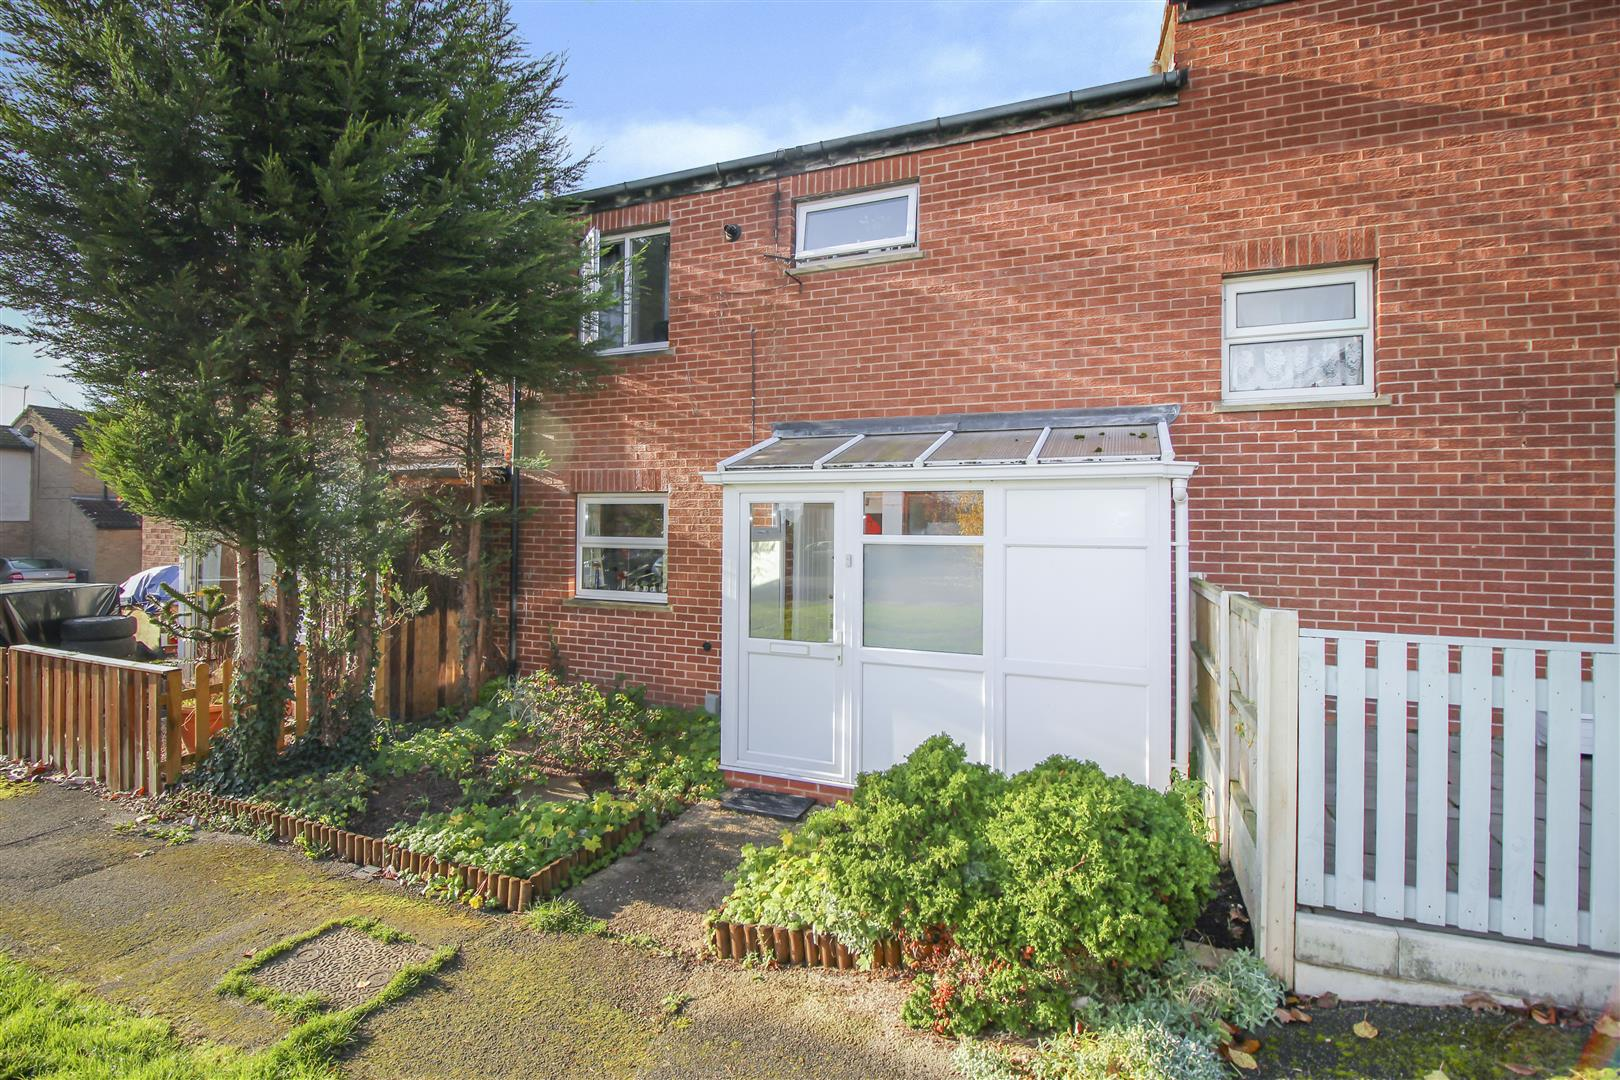 3 Bedrooms Terraced House for sale in Bourne Close, Bramcote